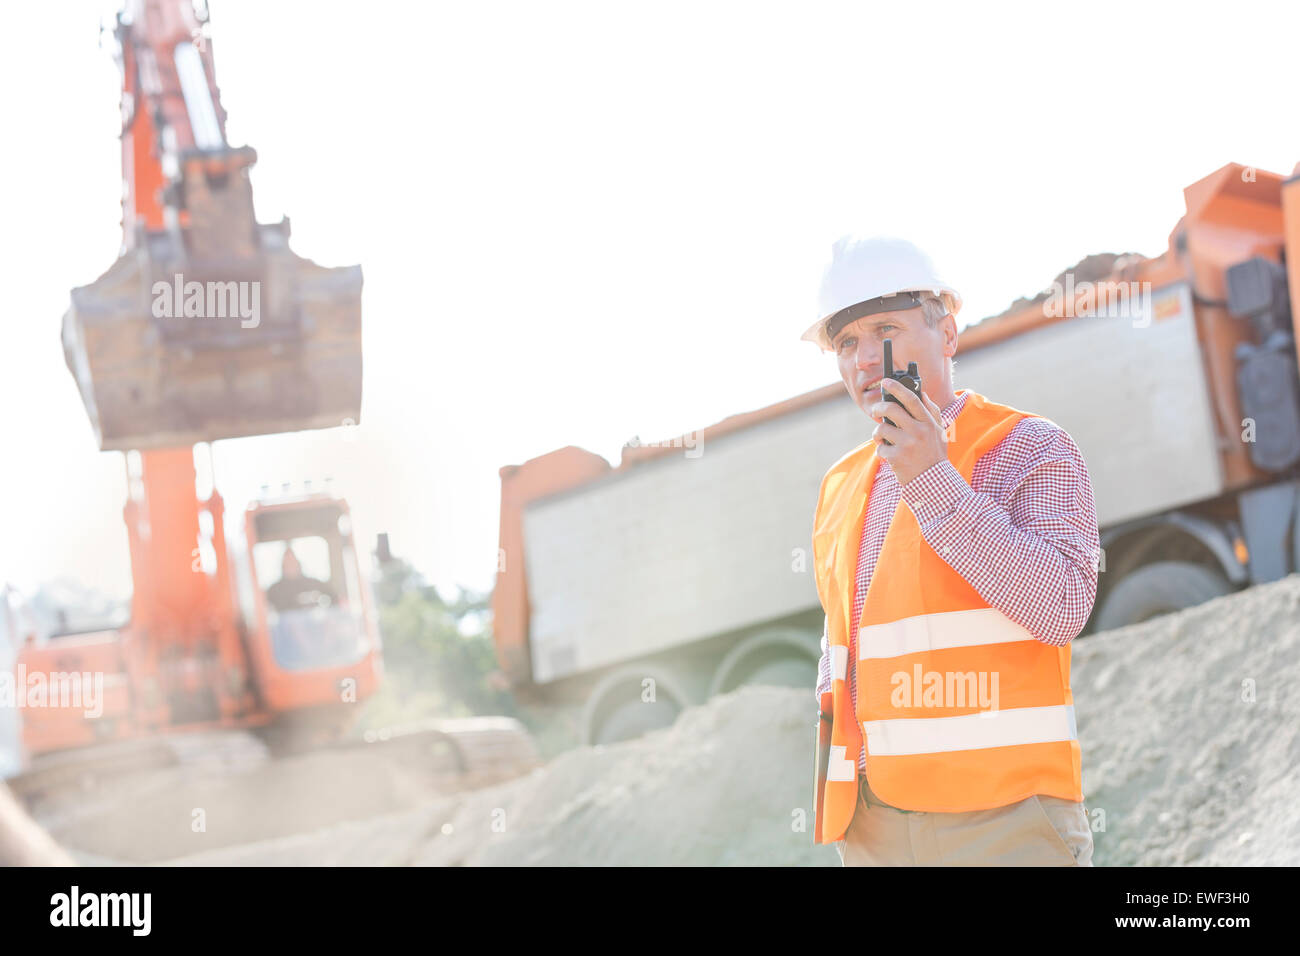 Architect using walkie-talkie while working at construction site - Stock Image